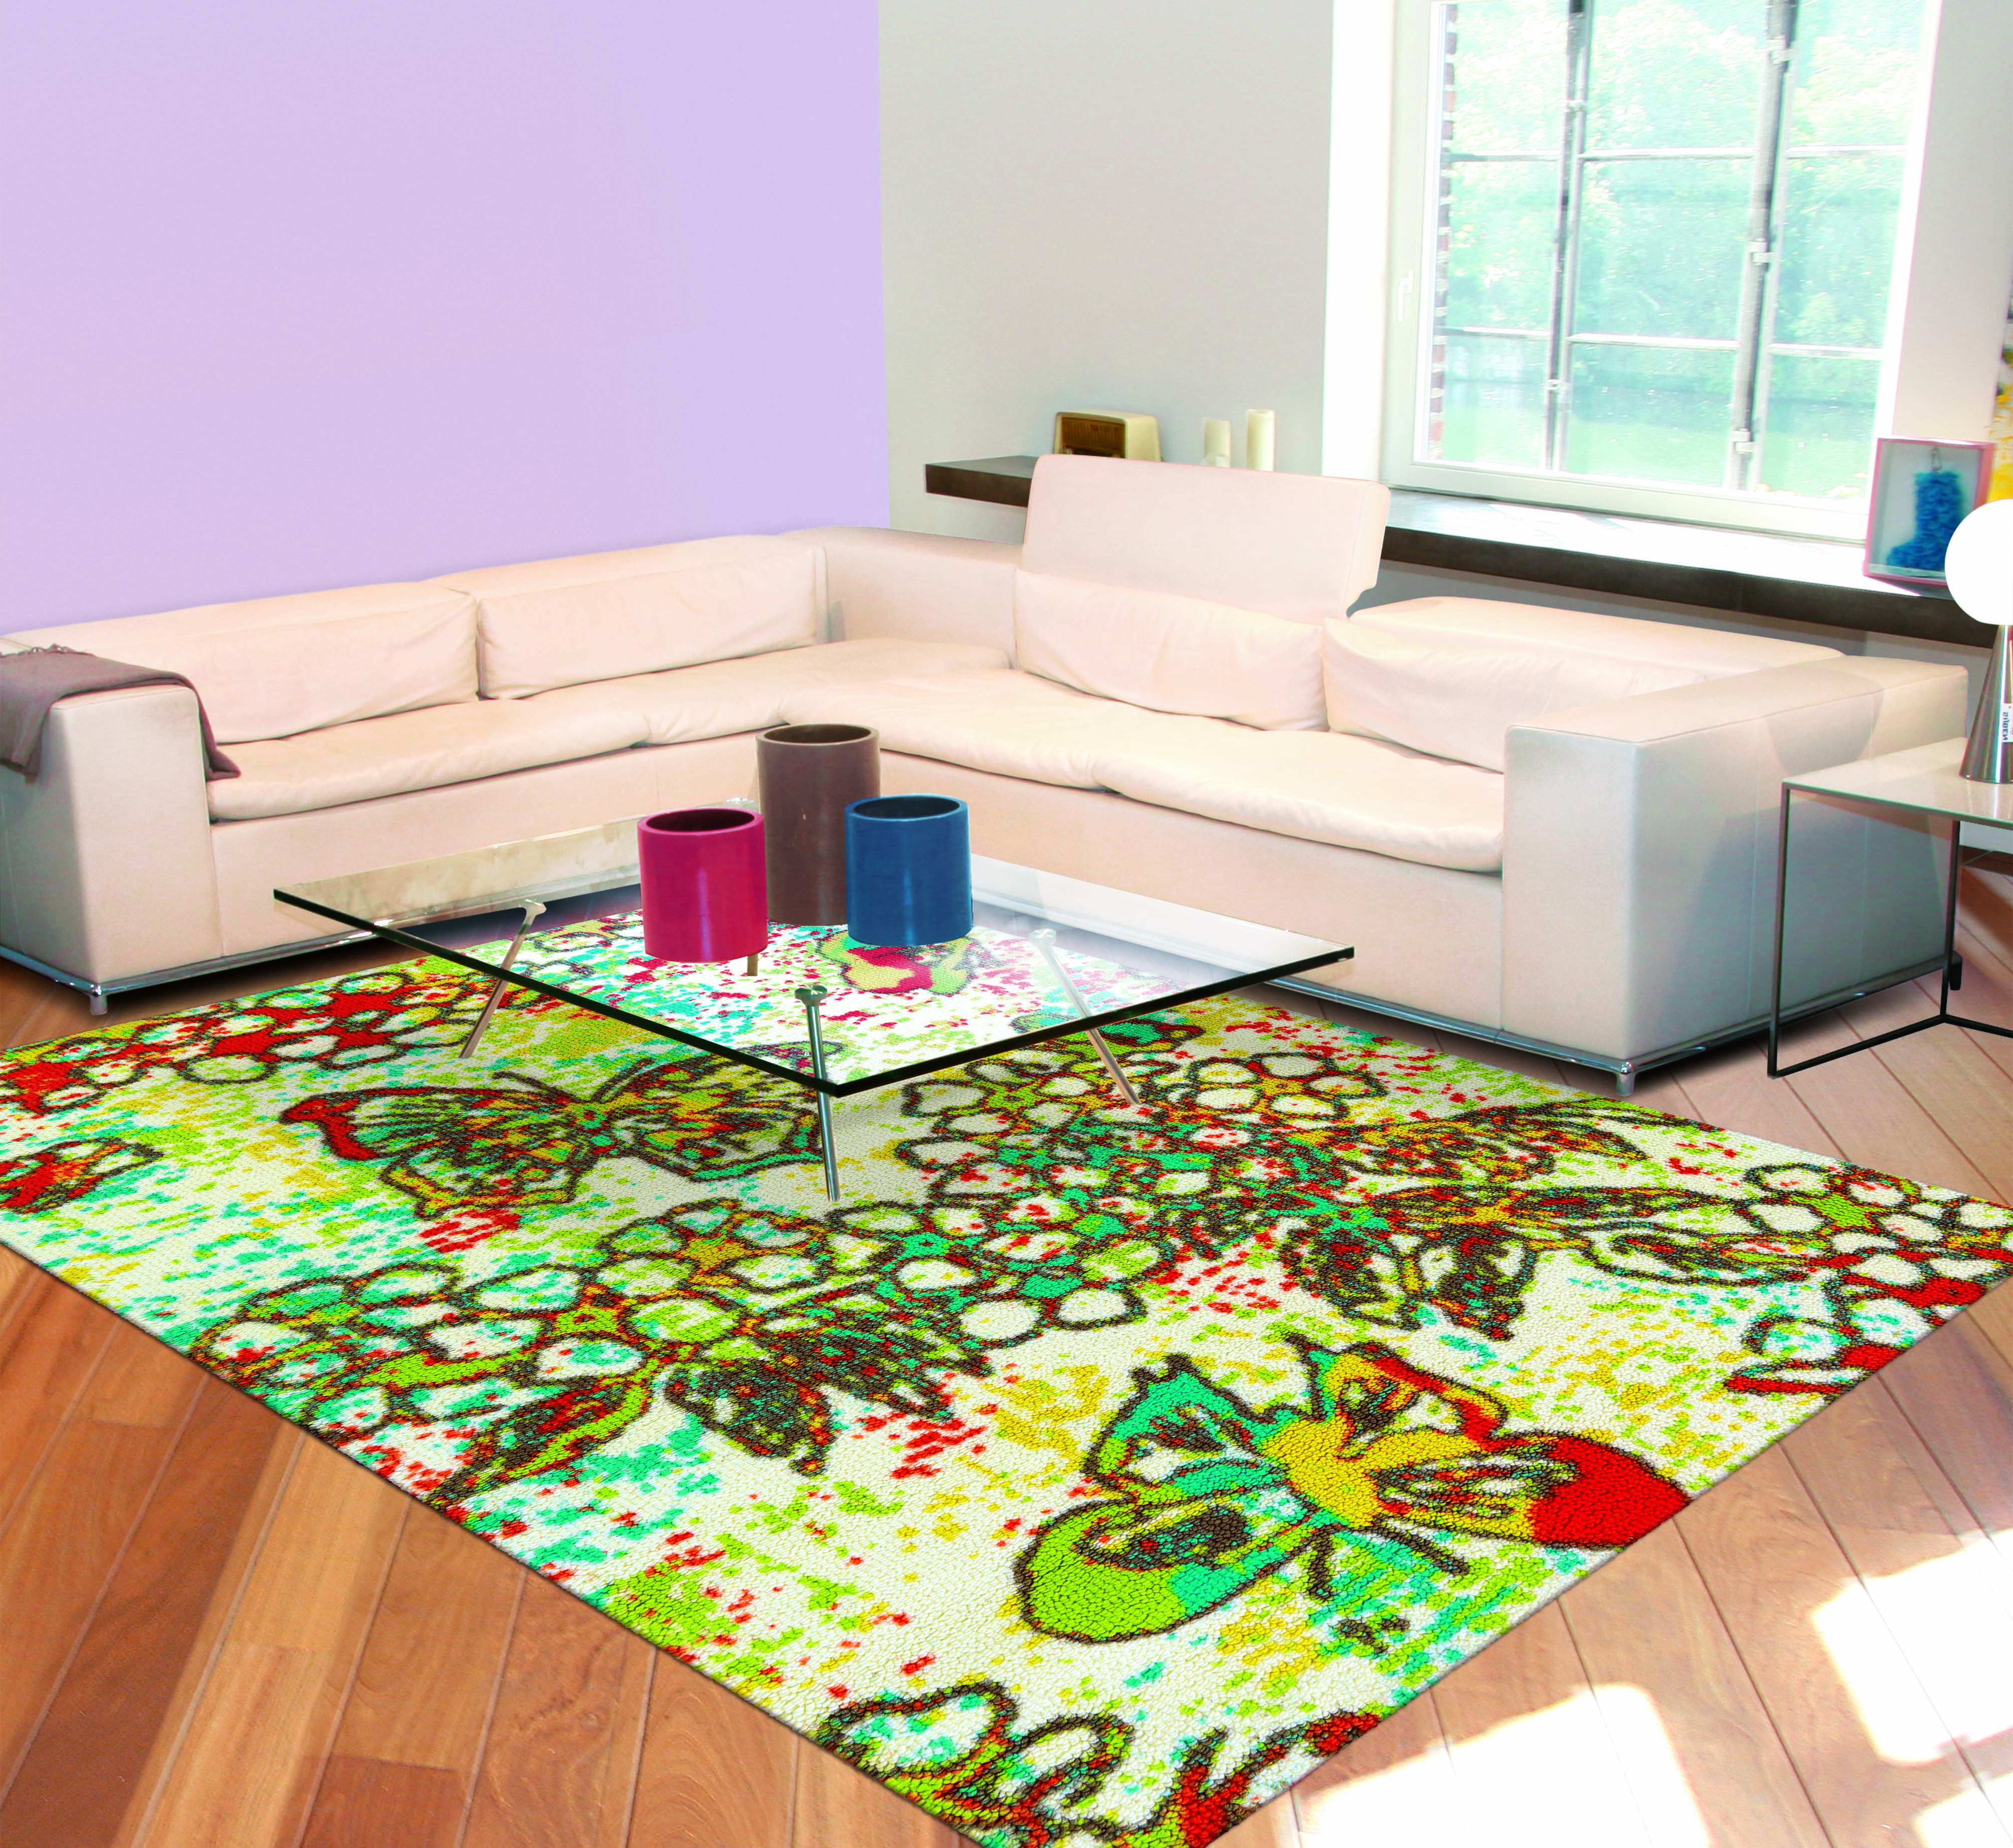 A Lovely And Colorful Butterfly Rug Inspired By Nature And Fills